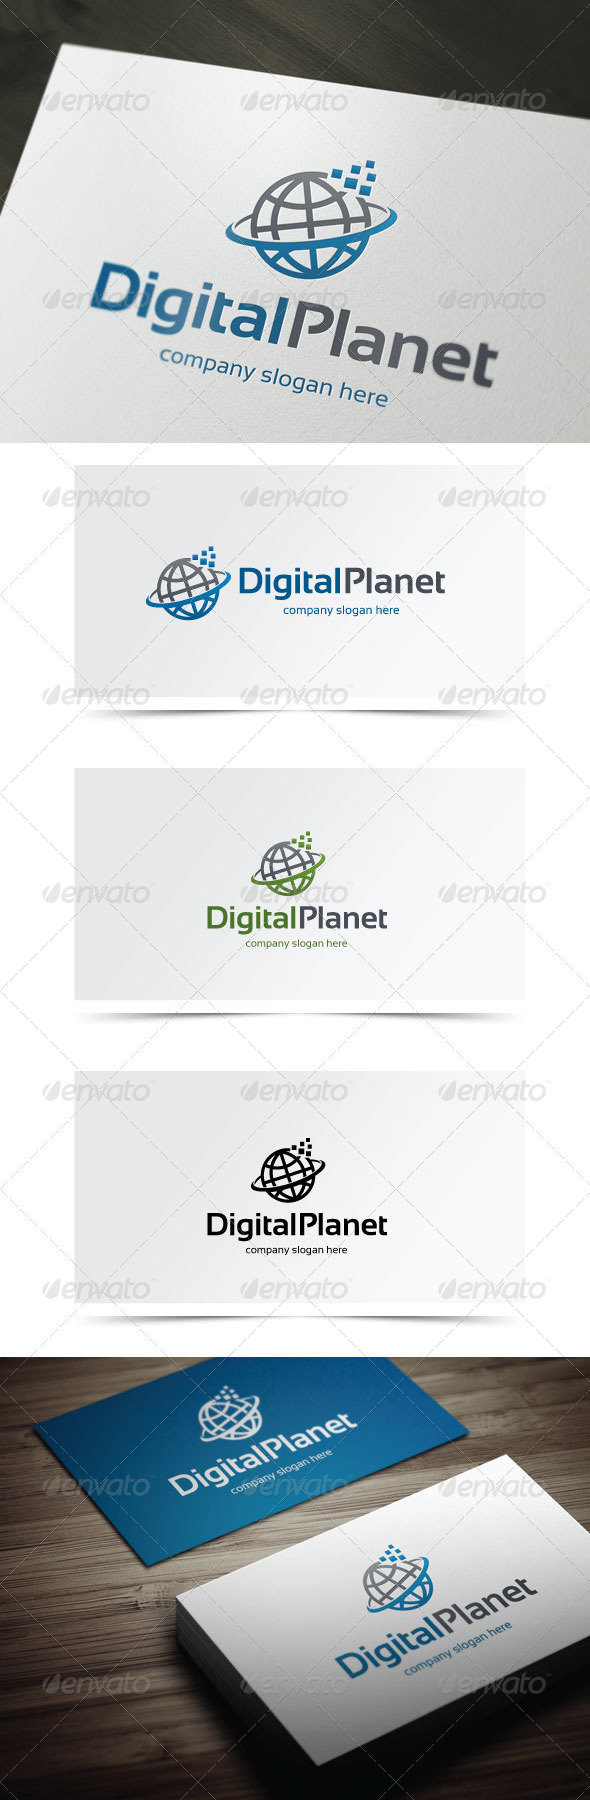 GraphicRiver Digital Planet 5776877